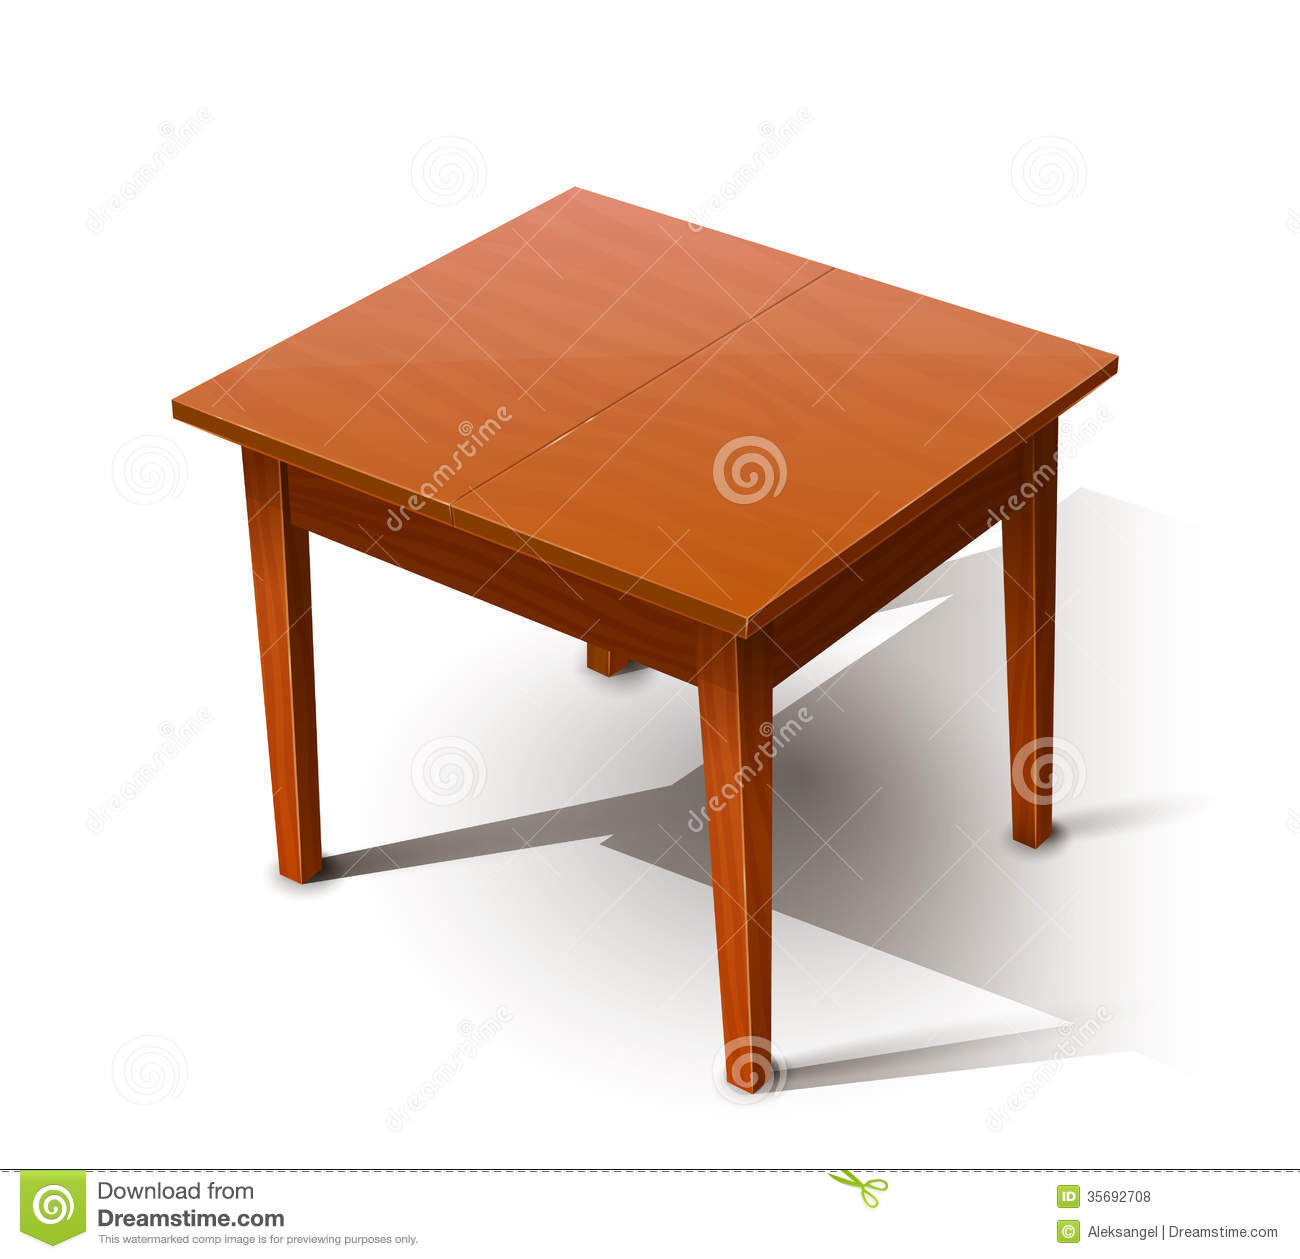 Marvelous photograph of Wooden table. Eps10 vector illustration. on white background  with #4E1801 color and 1300x1259 pixels